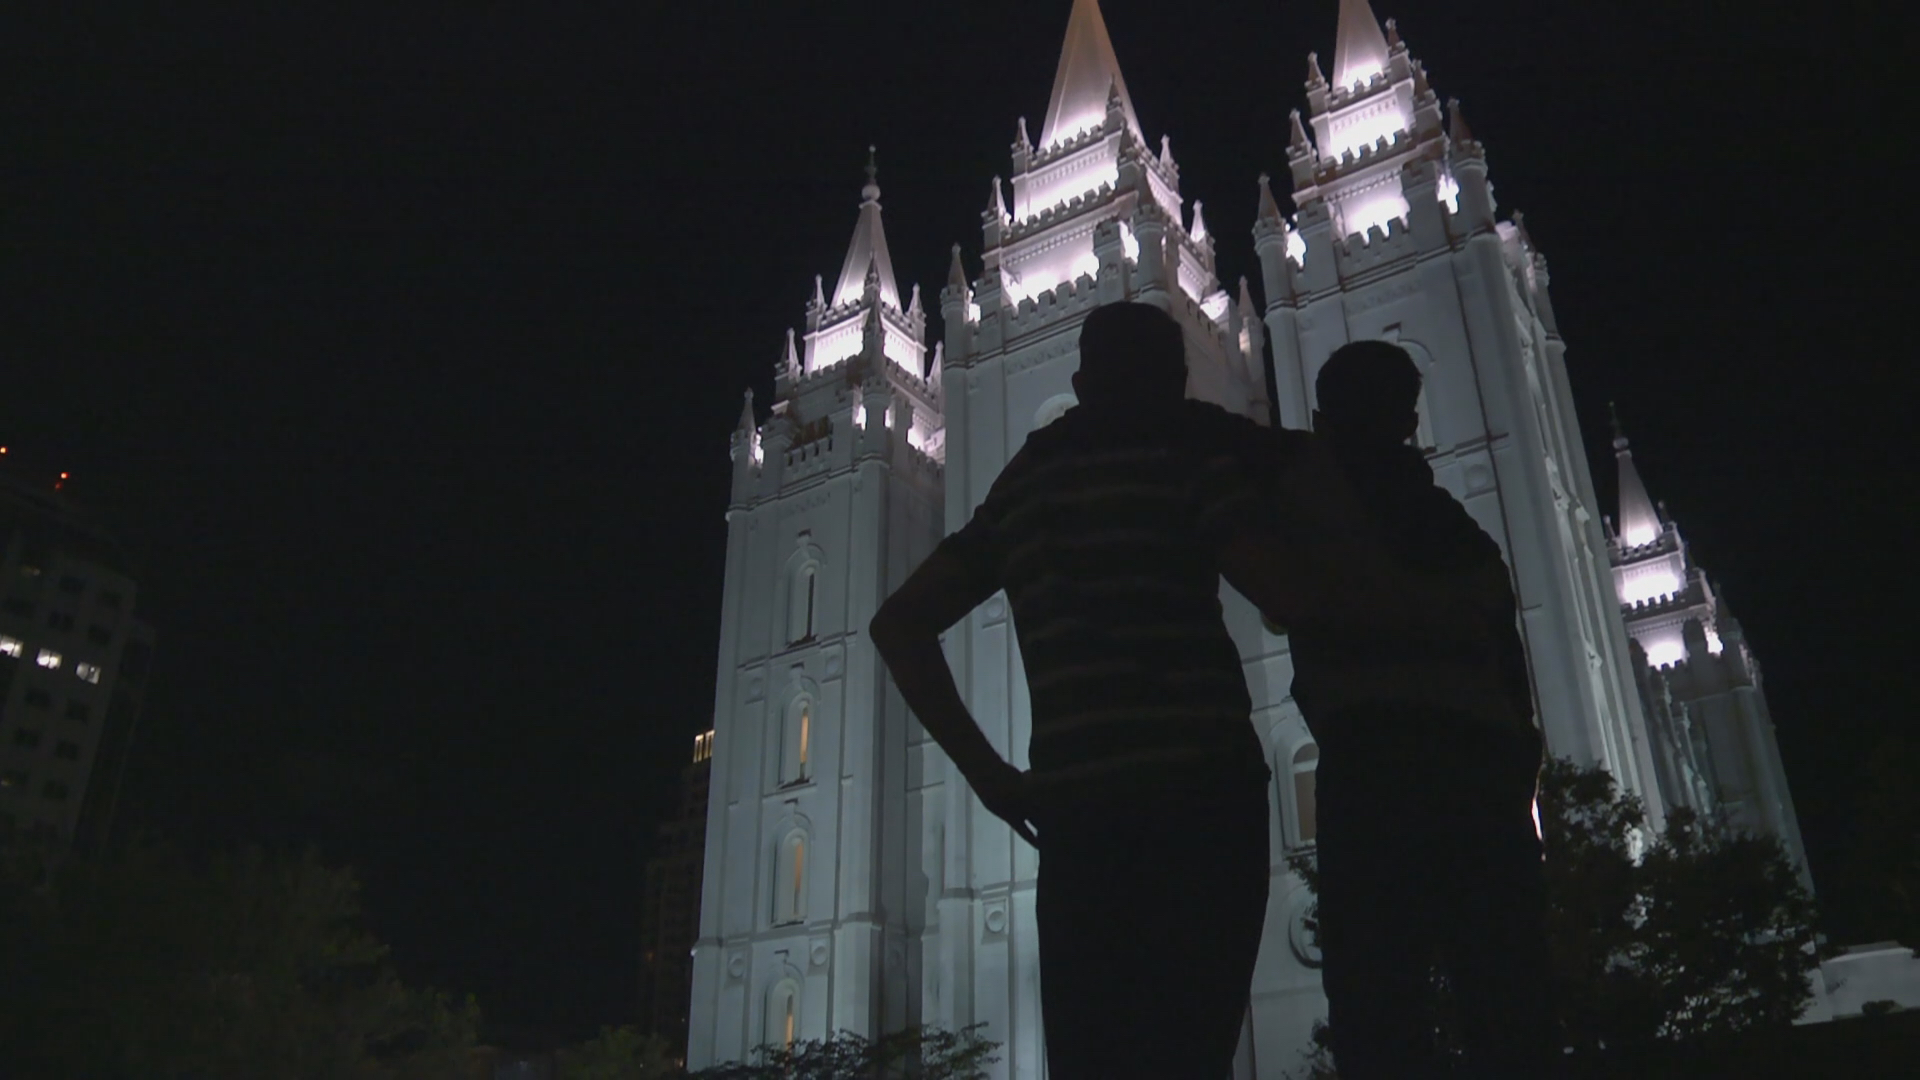 Latter-Day Saint 01 - Chris and Mark in front of temple.jpeg